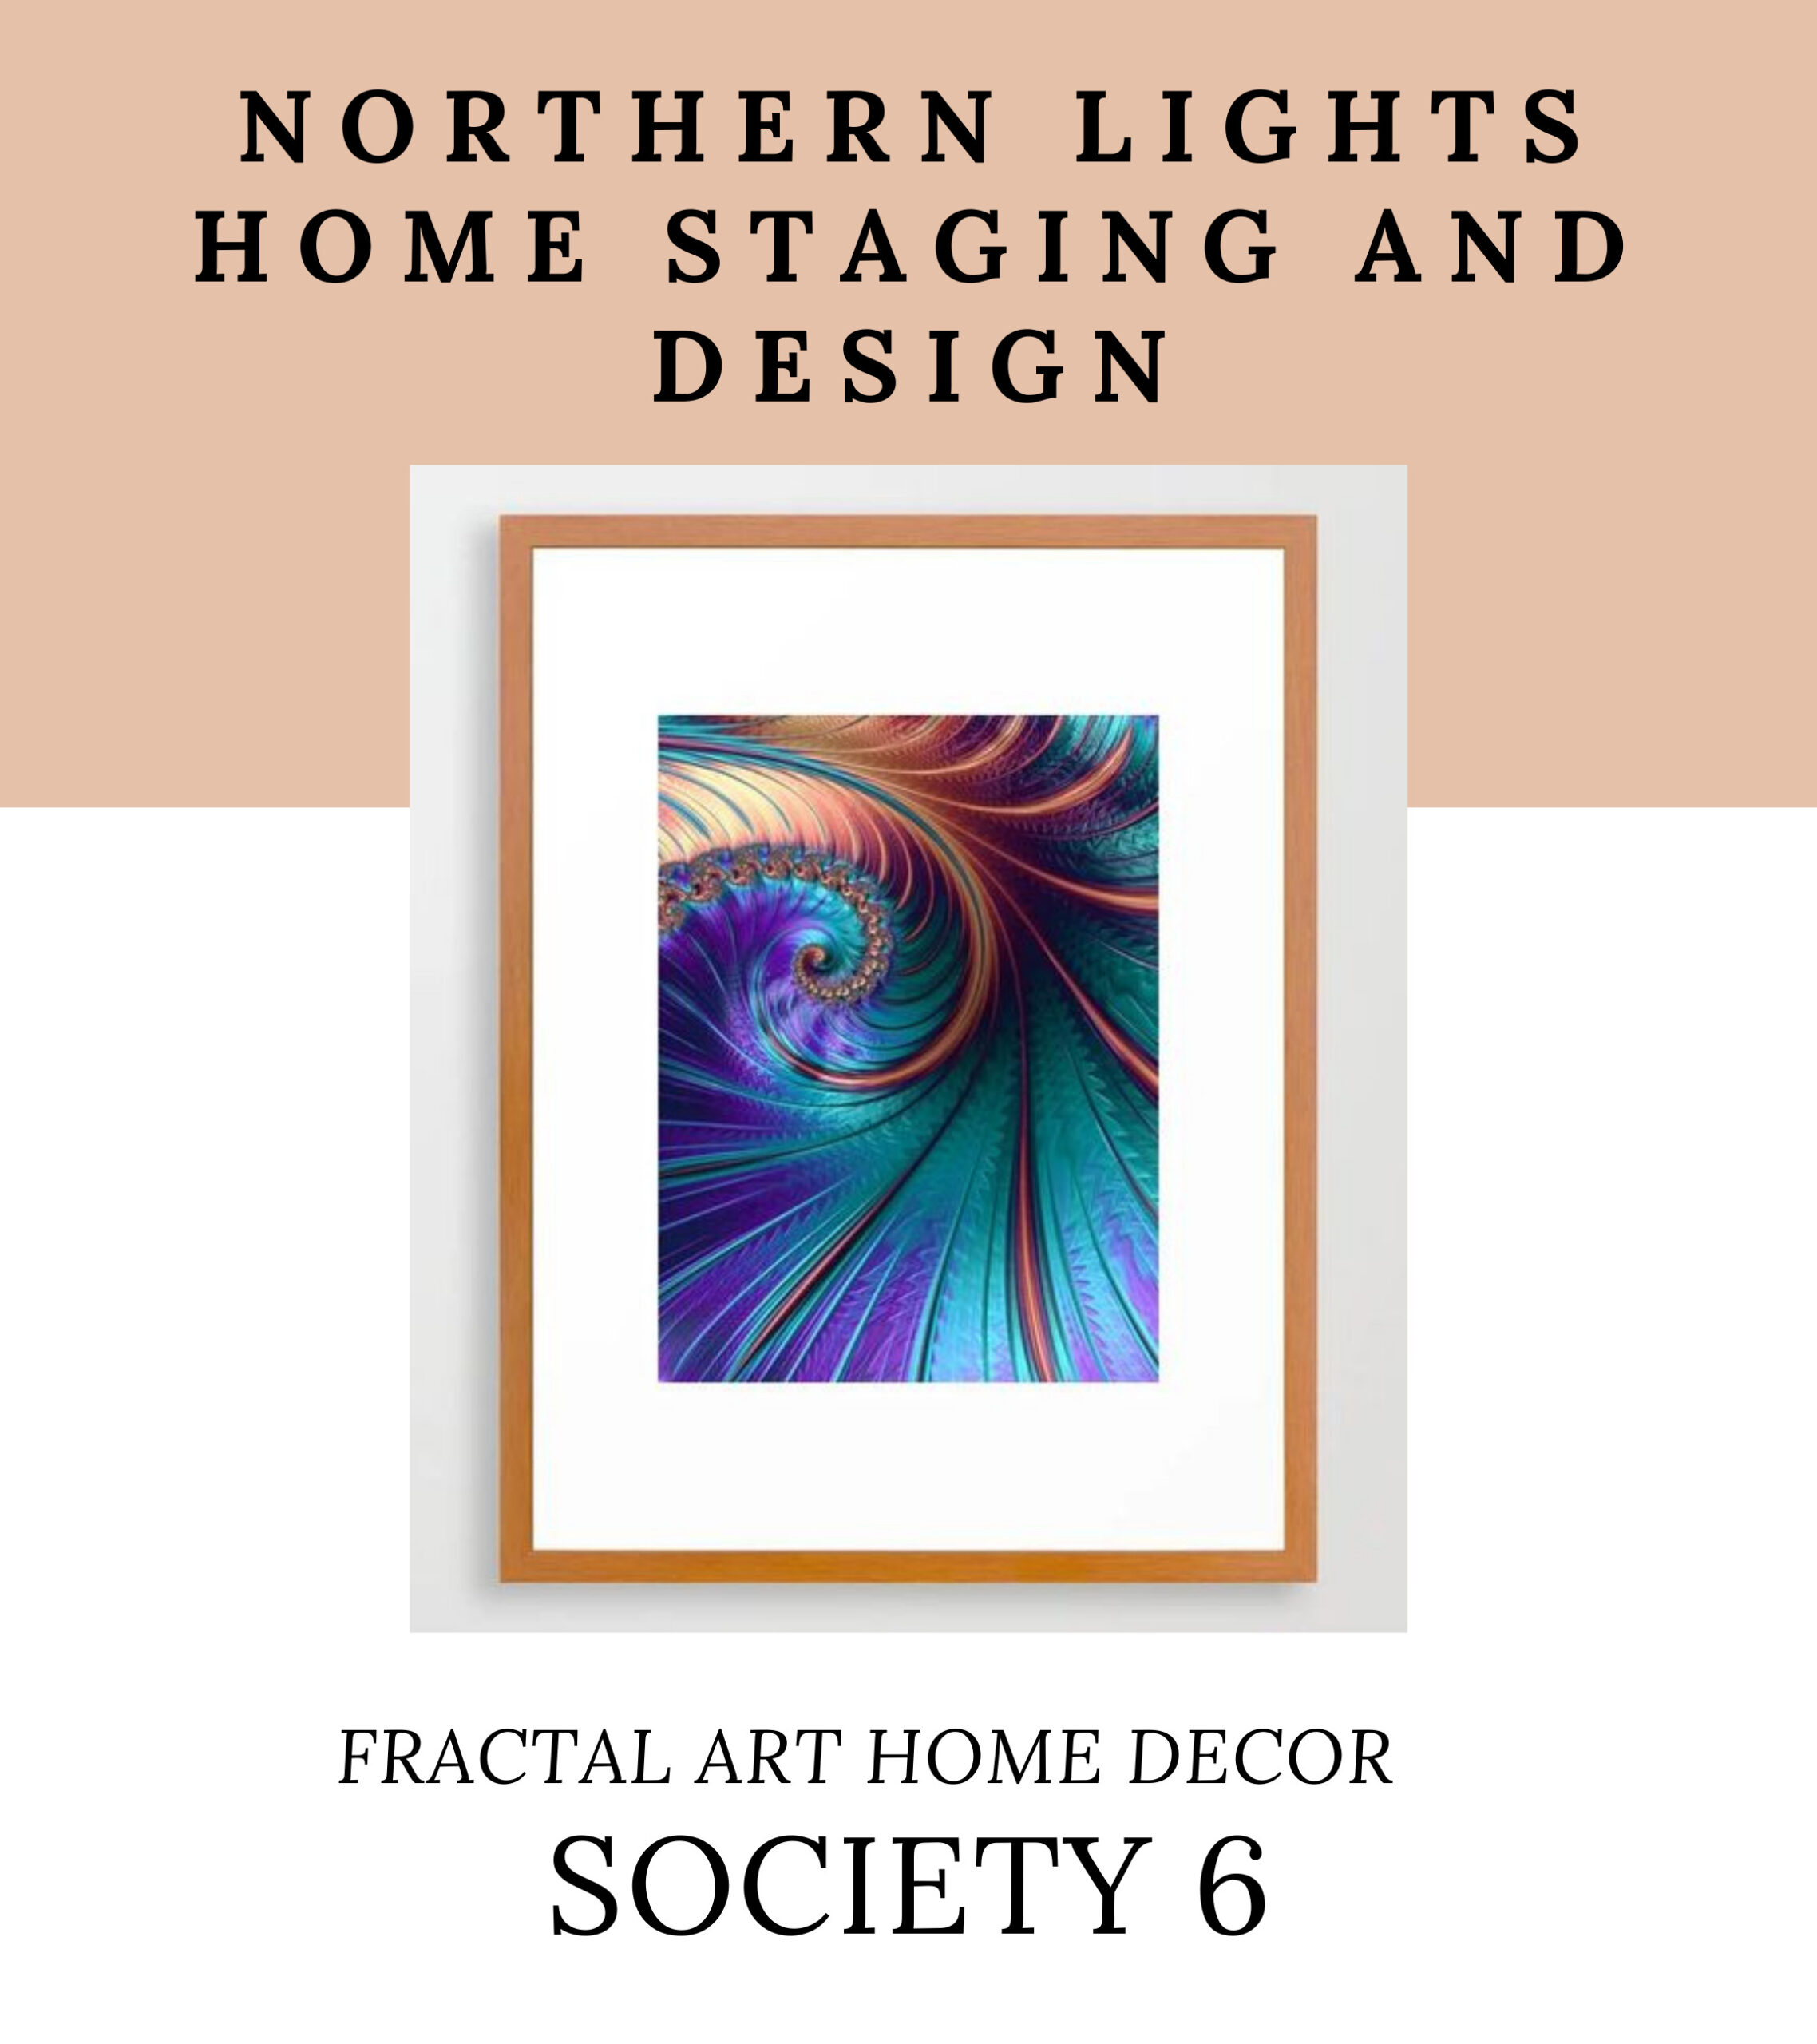 Northern Lights Home Staging and Design Fractal Art Home Decor on Society 6